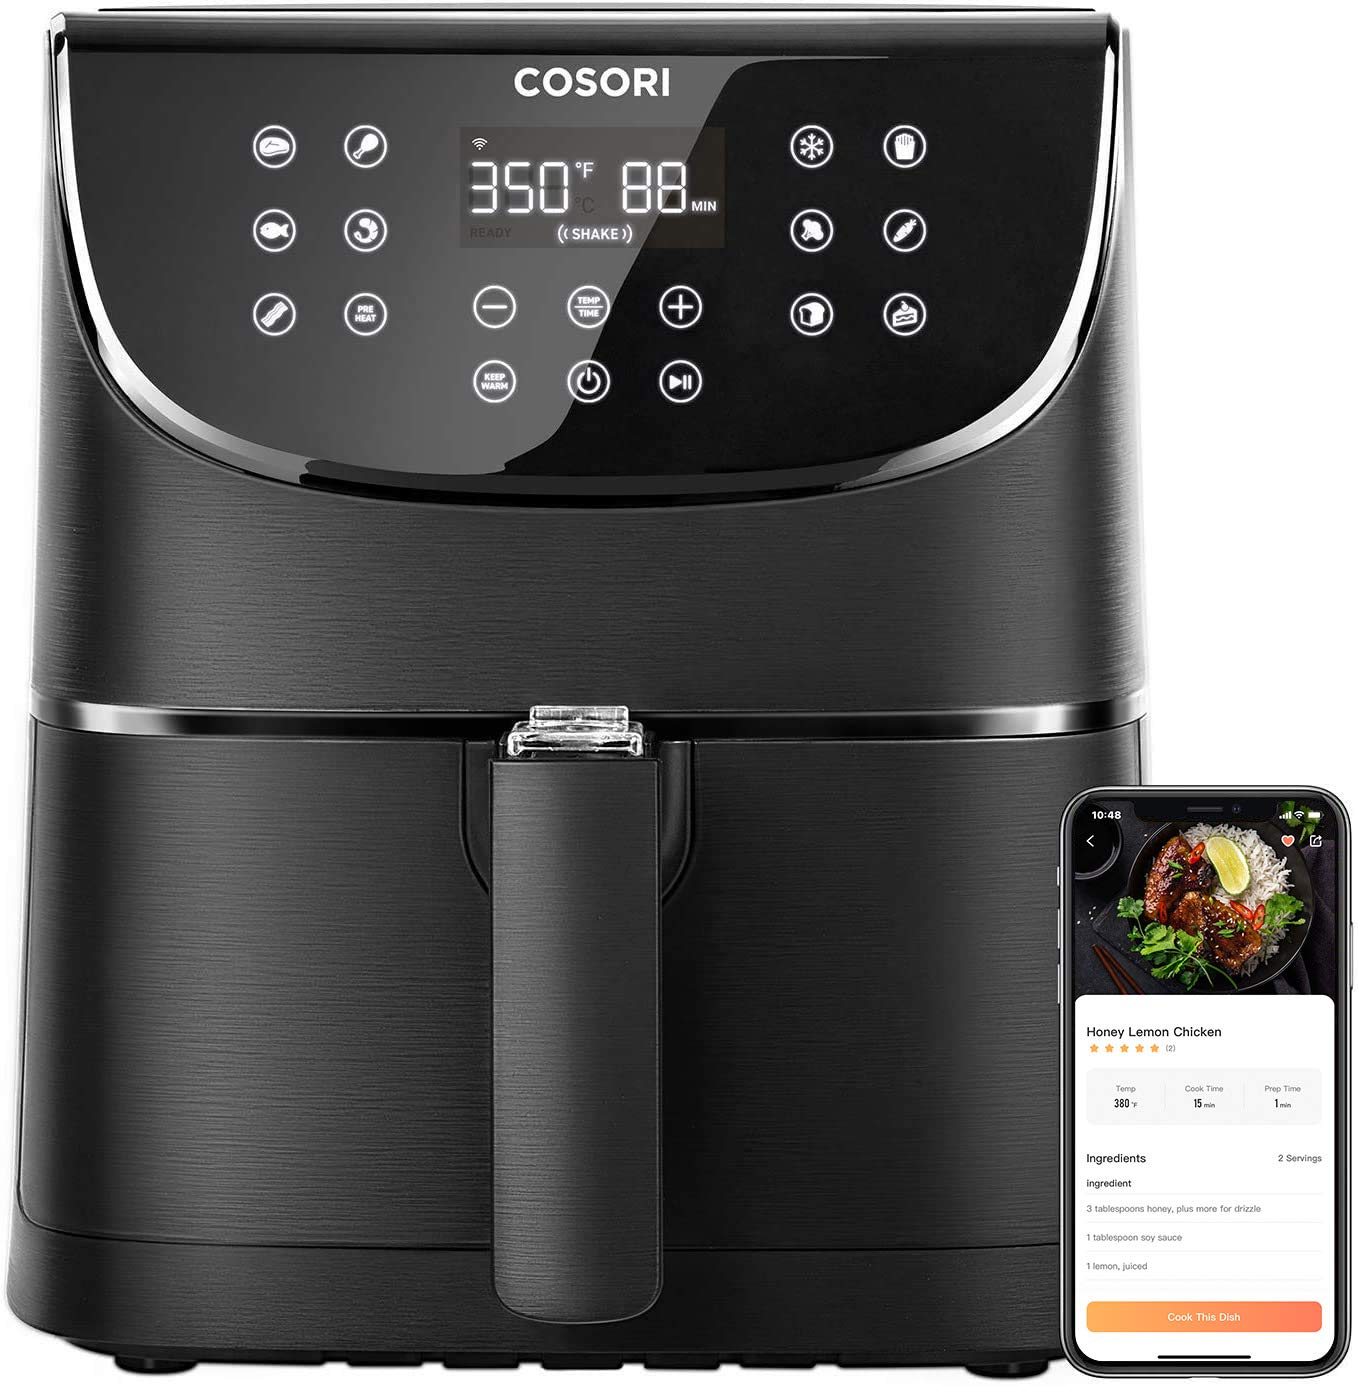 COSORI Smart WiFi Air Fryer(100 Recipes), Digital Touchscreen with 13 Cooking Functions for Air Frying, Roasting & Keep Warm ,Preheat & Shake Remind, Works with Alexa & Google Assistant, 5.8 QT-Black